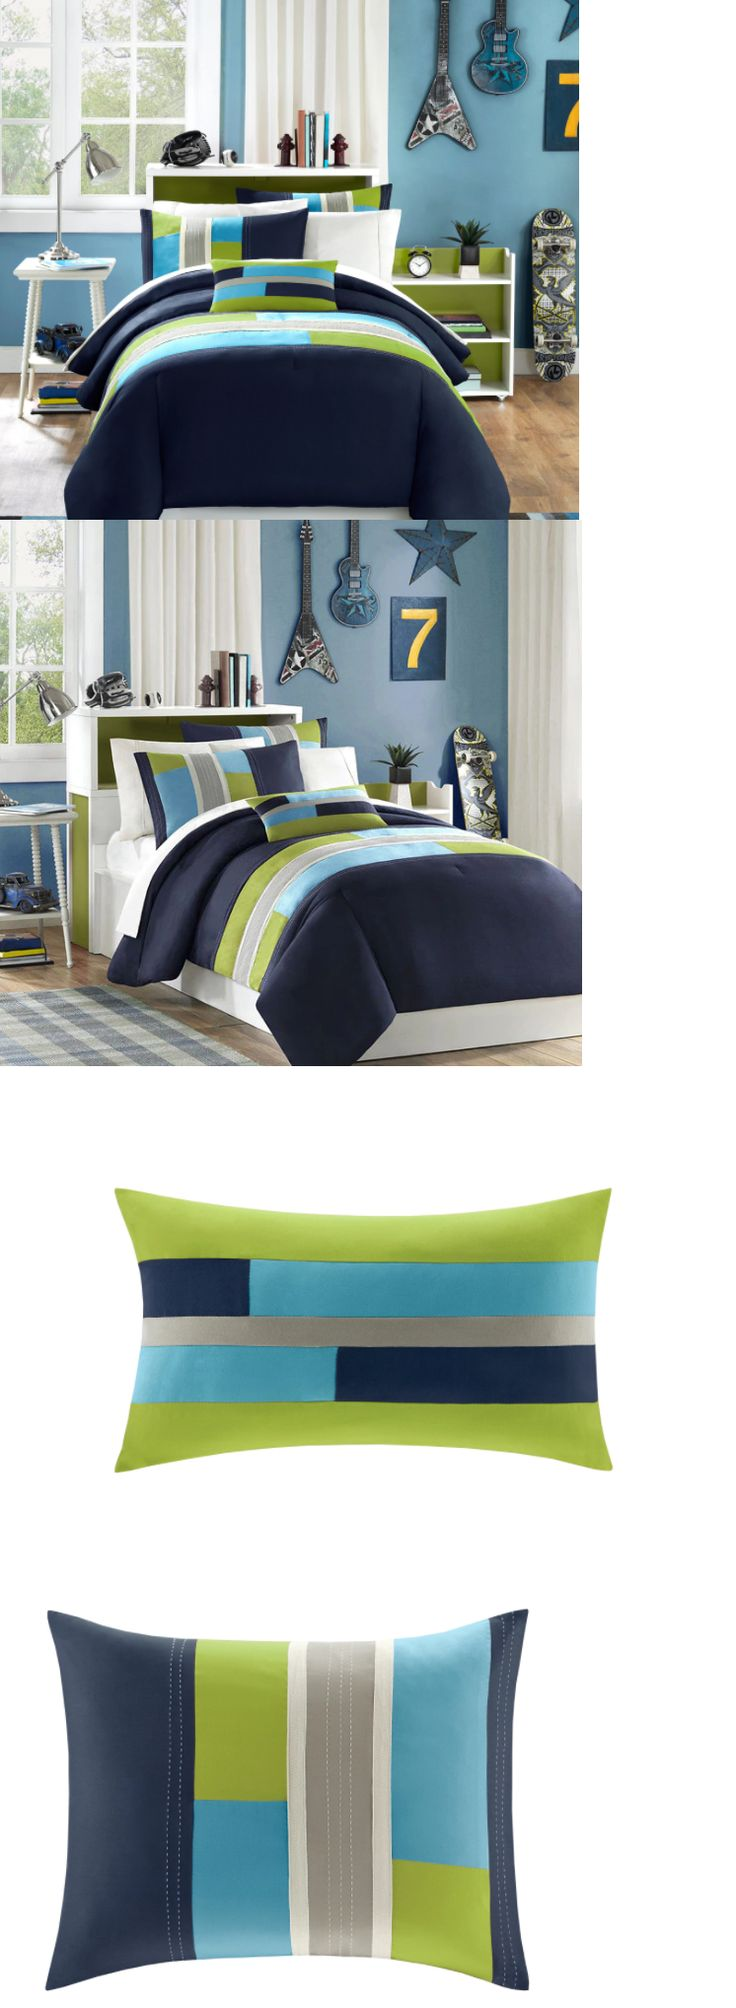 Dark Blue Bedding Sets - Bedding sets 66731 full size bedding sets queen teens comforter boys navy blue striped bedspread